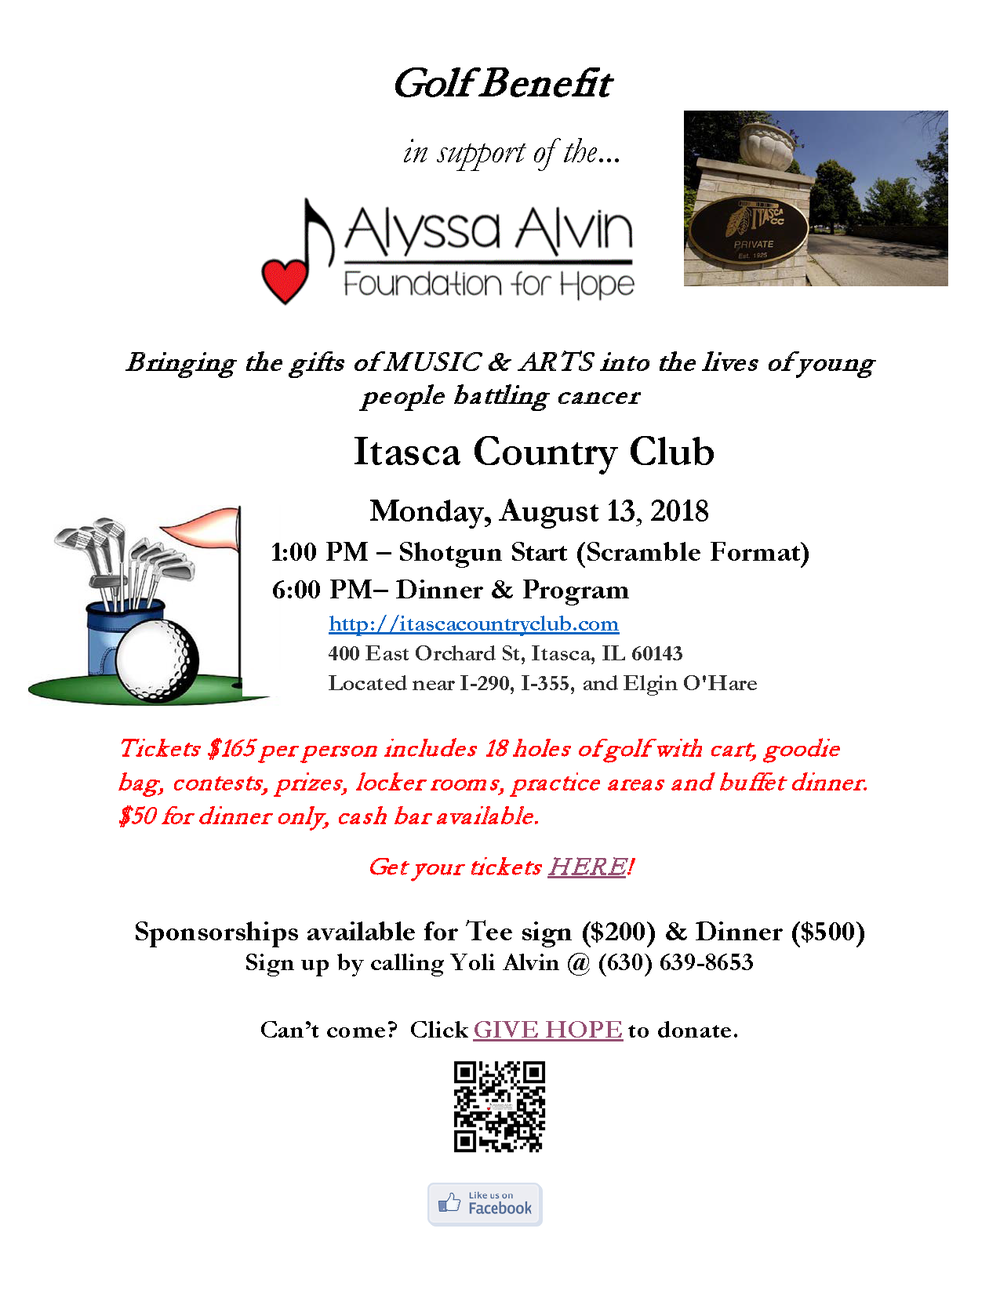 Itasca Private Golf Benefit Flyer - ga draft.png